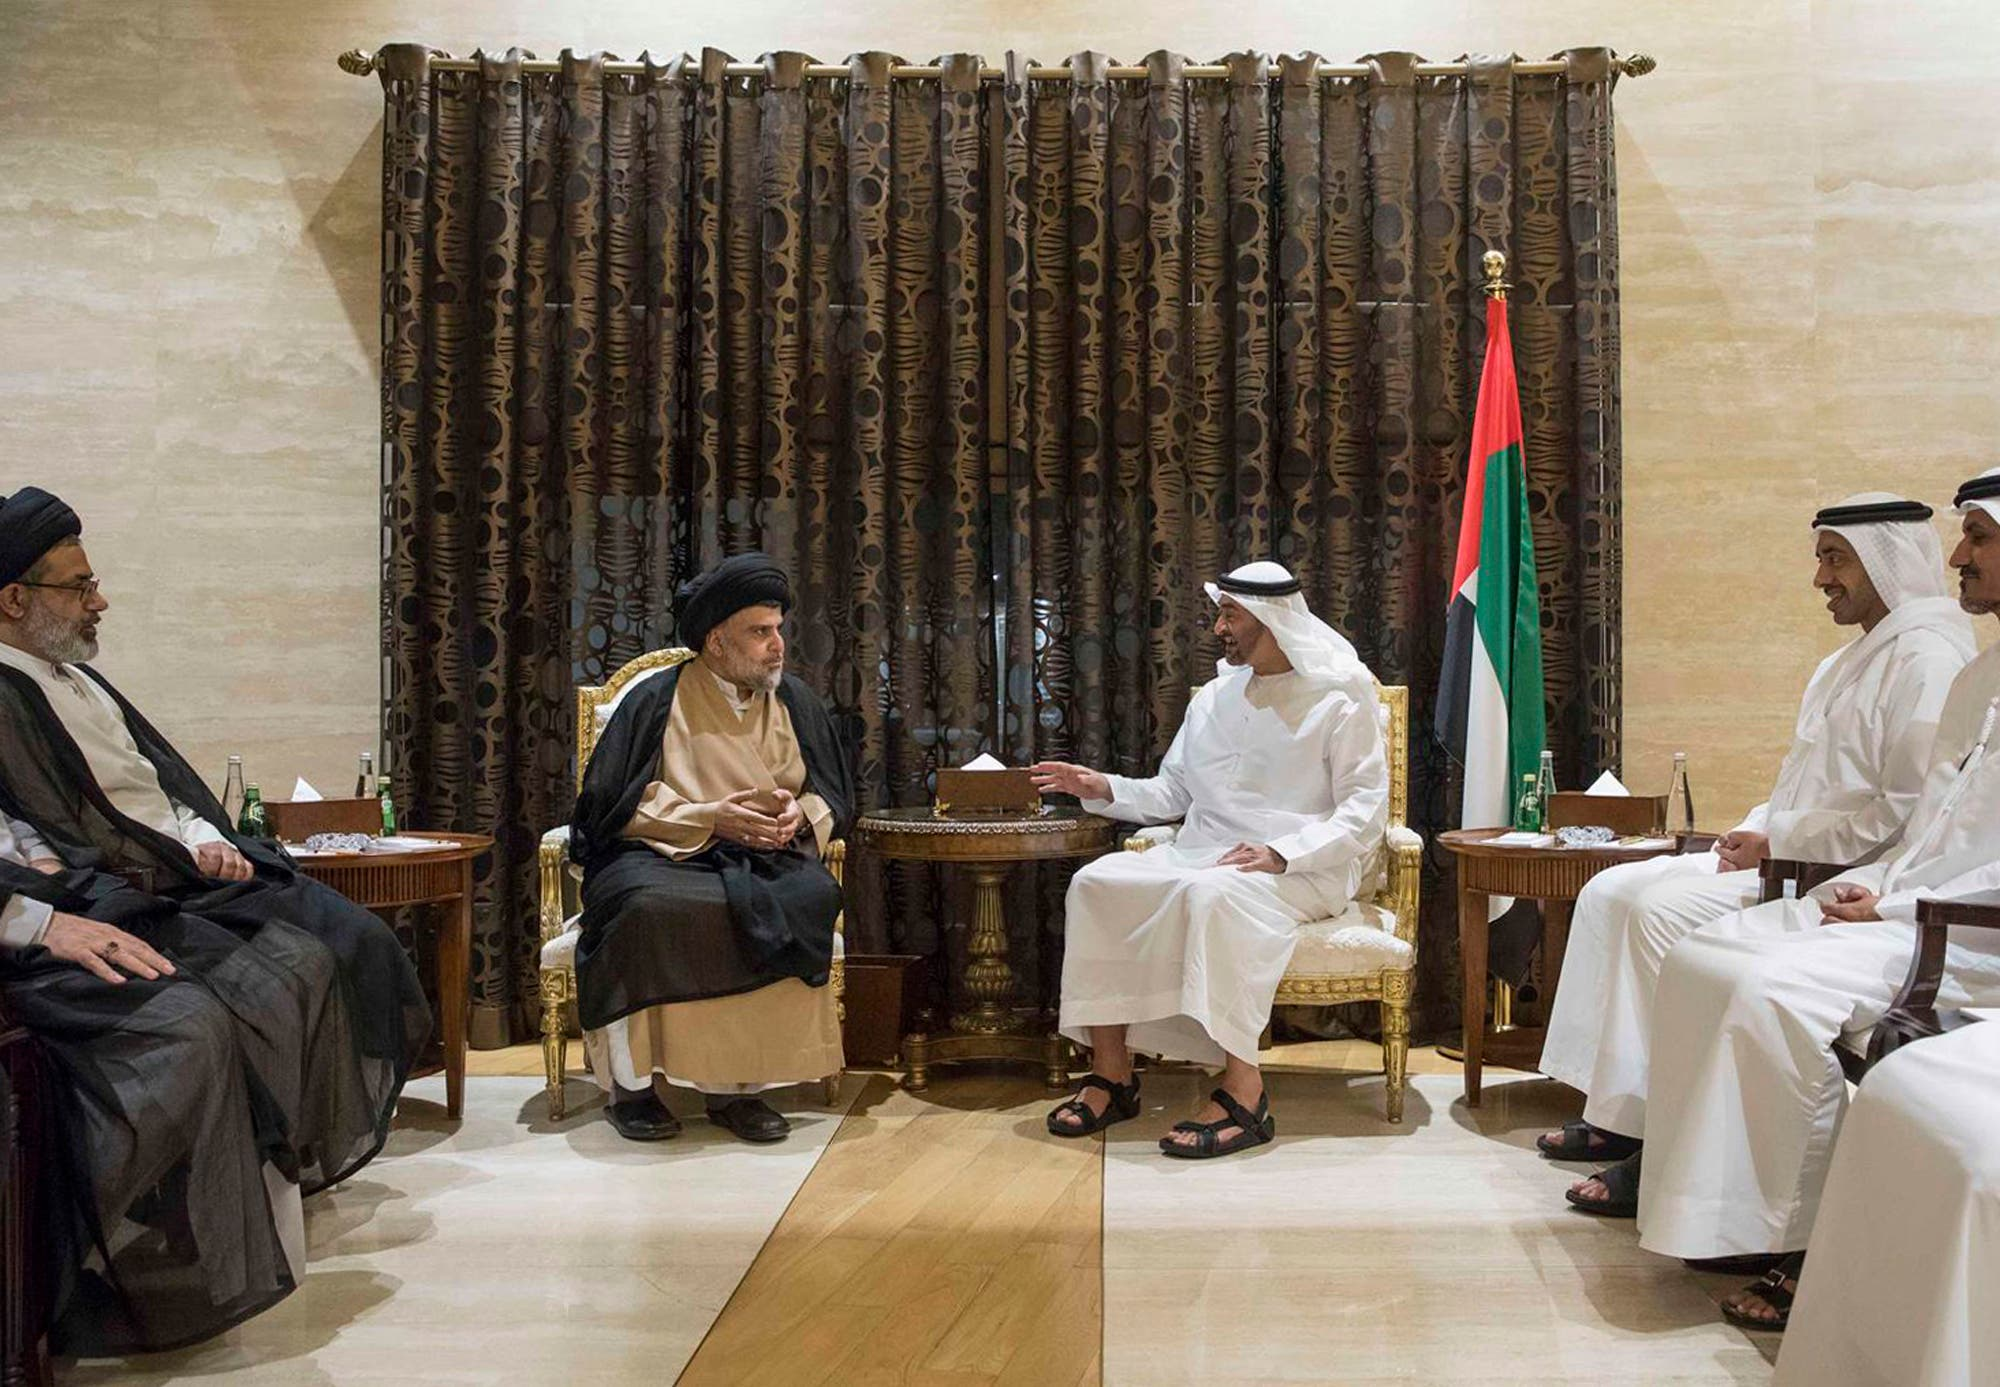 In this Sunday, August 13, 2017 photo released by Emirates News Agency, Mohamed bin Zayed Al Nahyan, Crown Prince of Abu Dhabi and Deputy Supreme Commander of the UAE Armed Forces, center right, and other officials, meet with influential Iraqi Shia cleric, Muqtada Al-Sadr, in Abu Dhabi, United Arab Emirates. (AP)